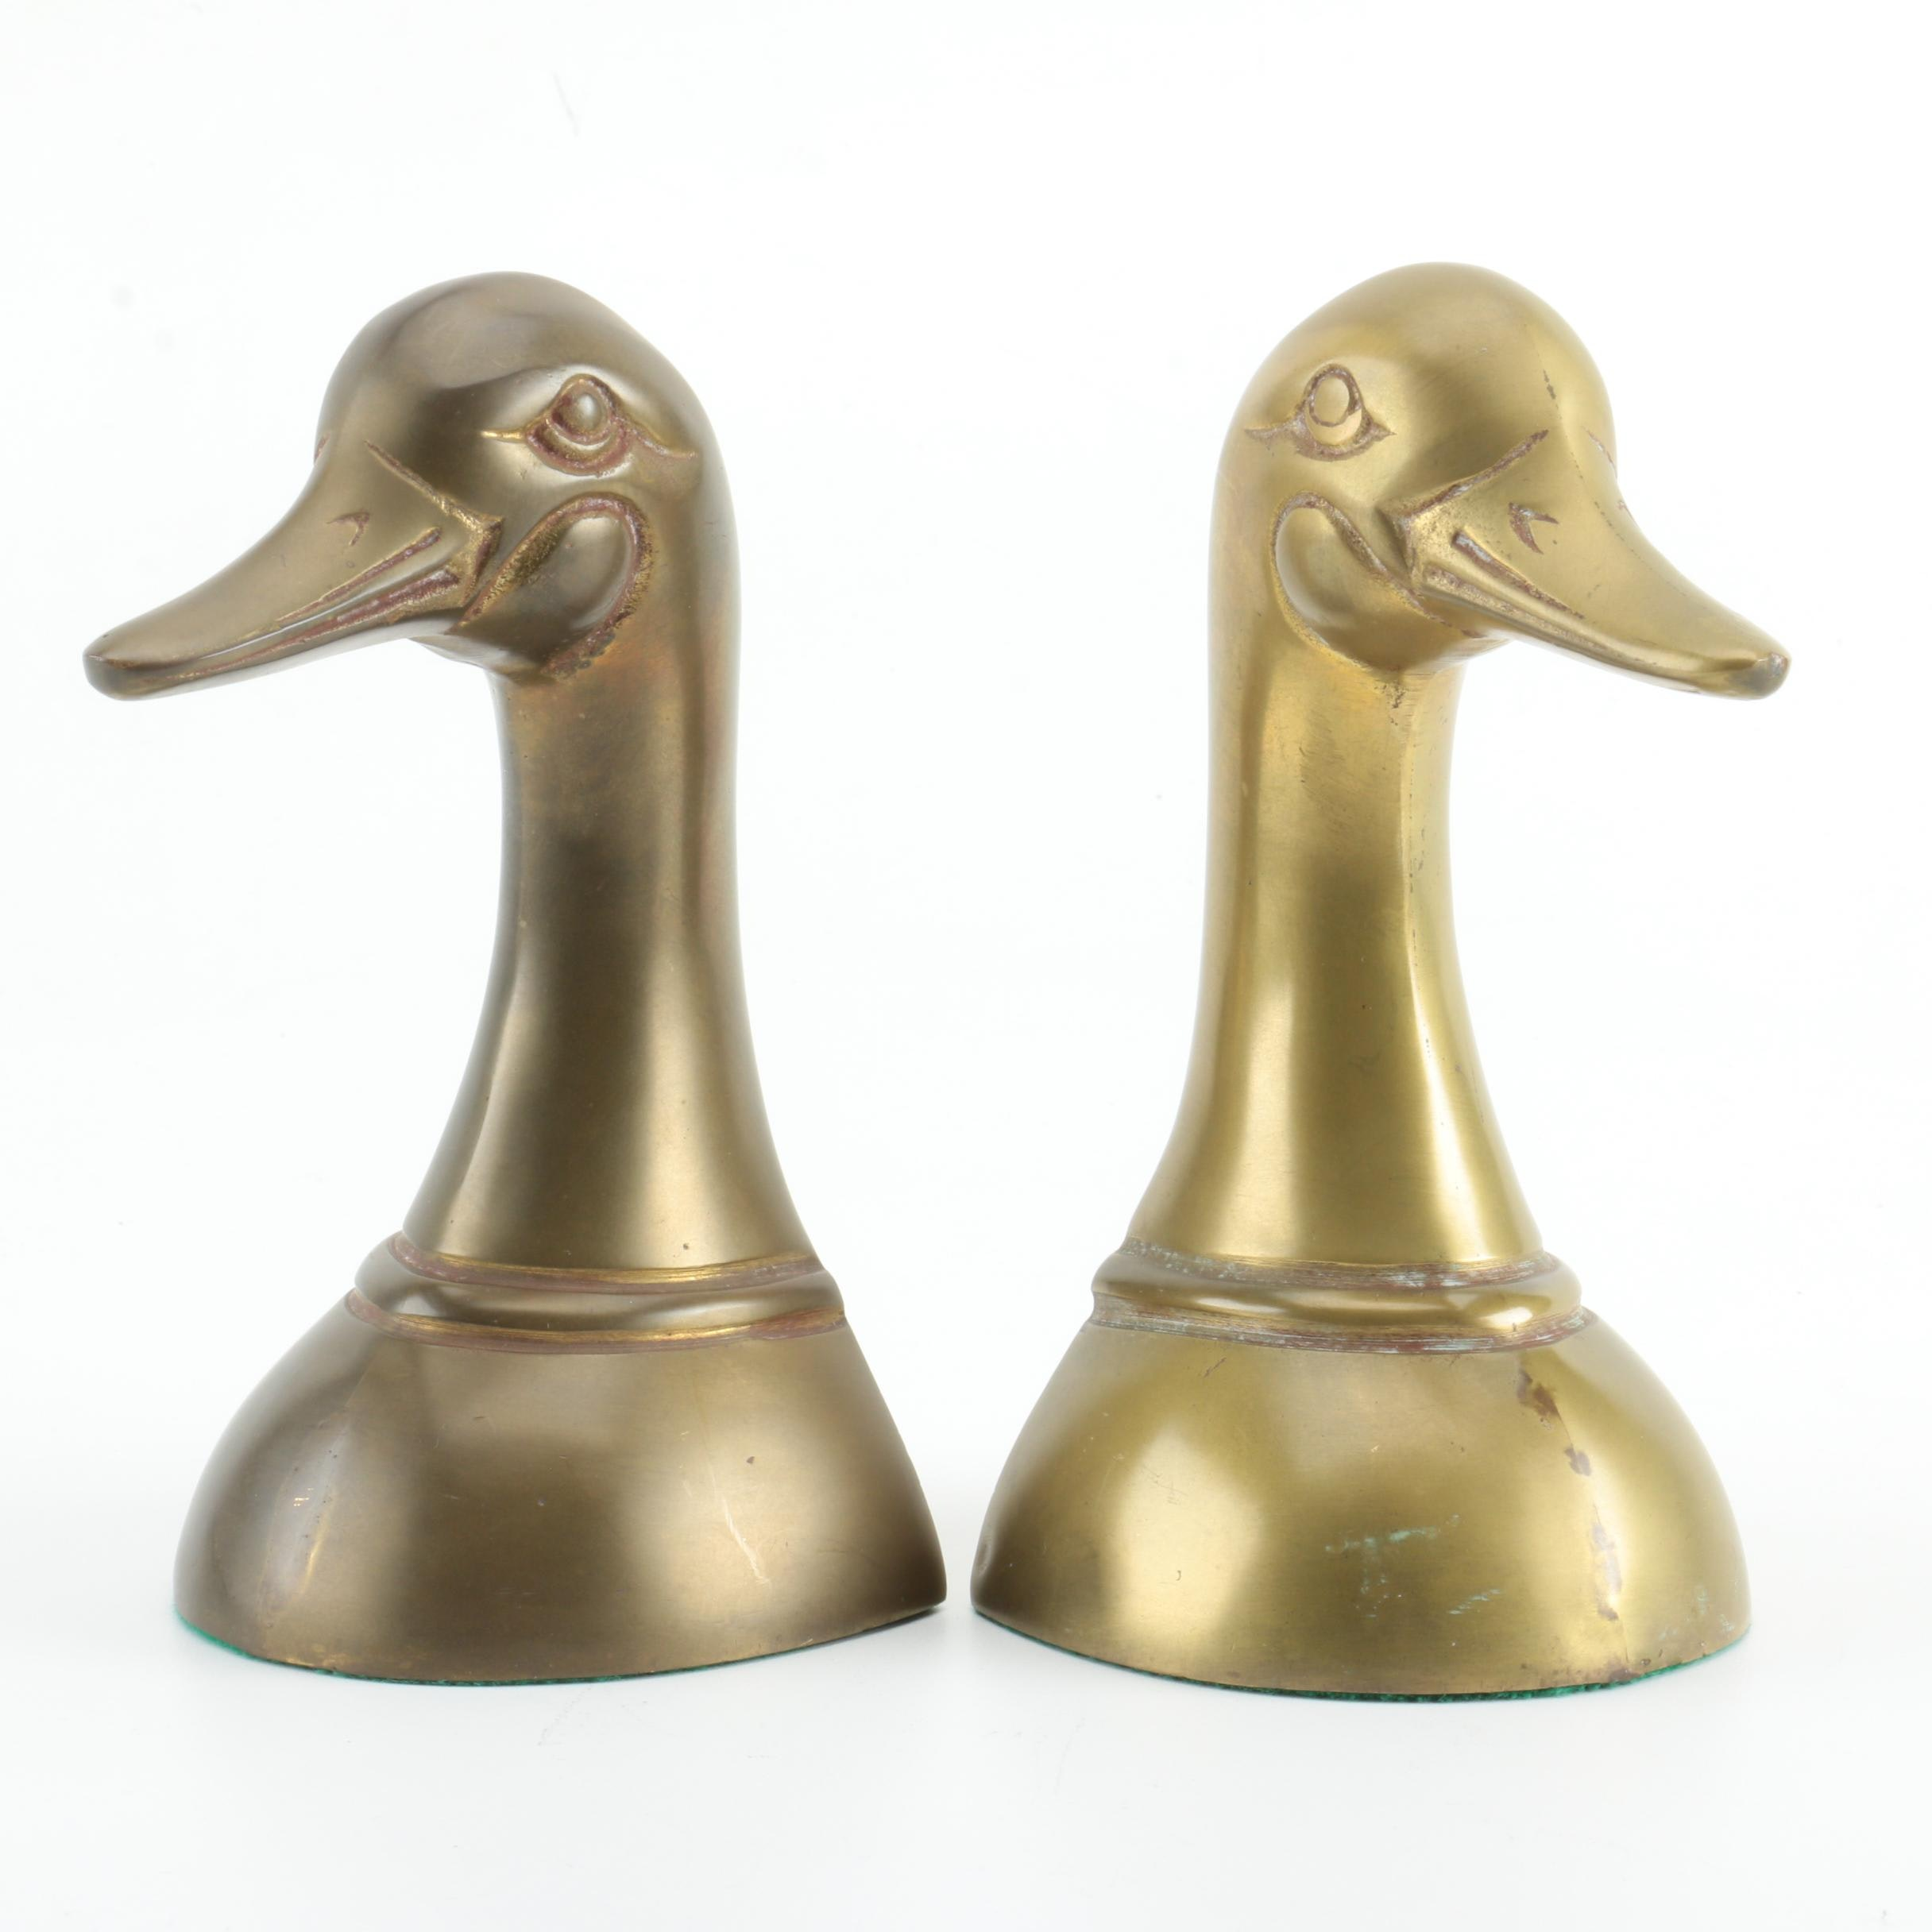 Vintage Brass Geese Bookends